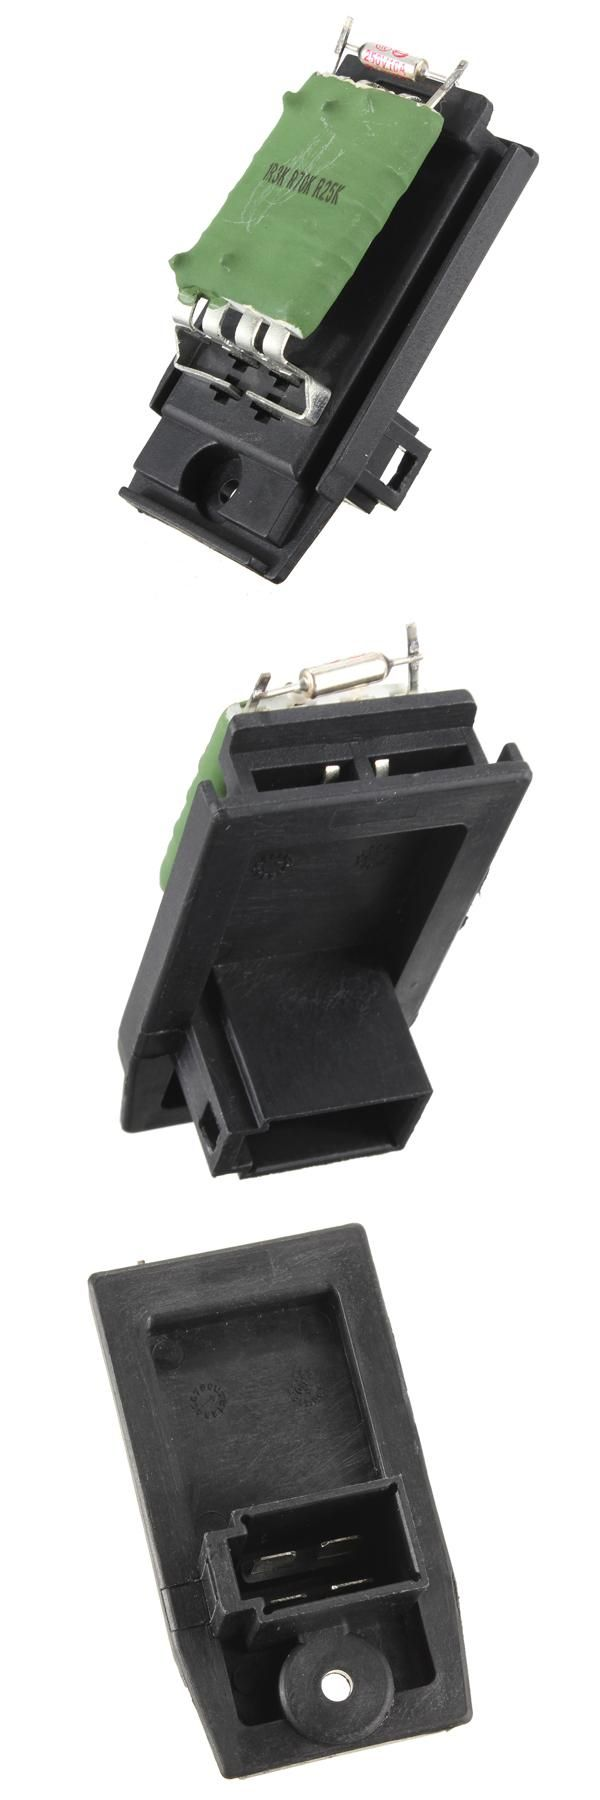 Ford tourneo courier pictures to pin on pinterest -  Visit To Buy Heater Blower Resistor For Ford Tourneo Focus Mk1 2